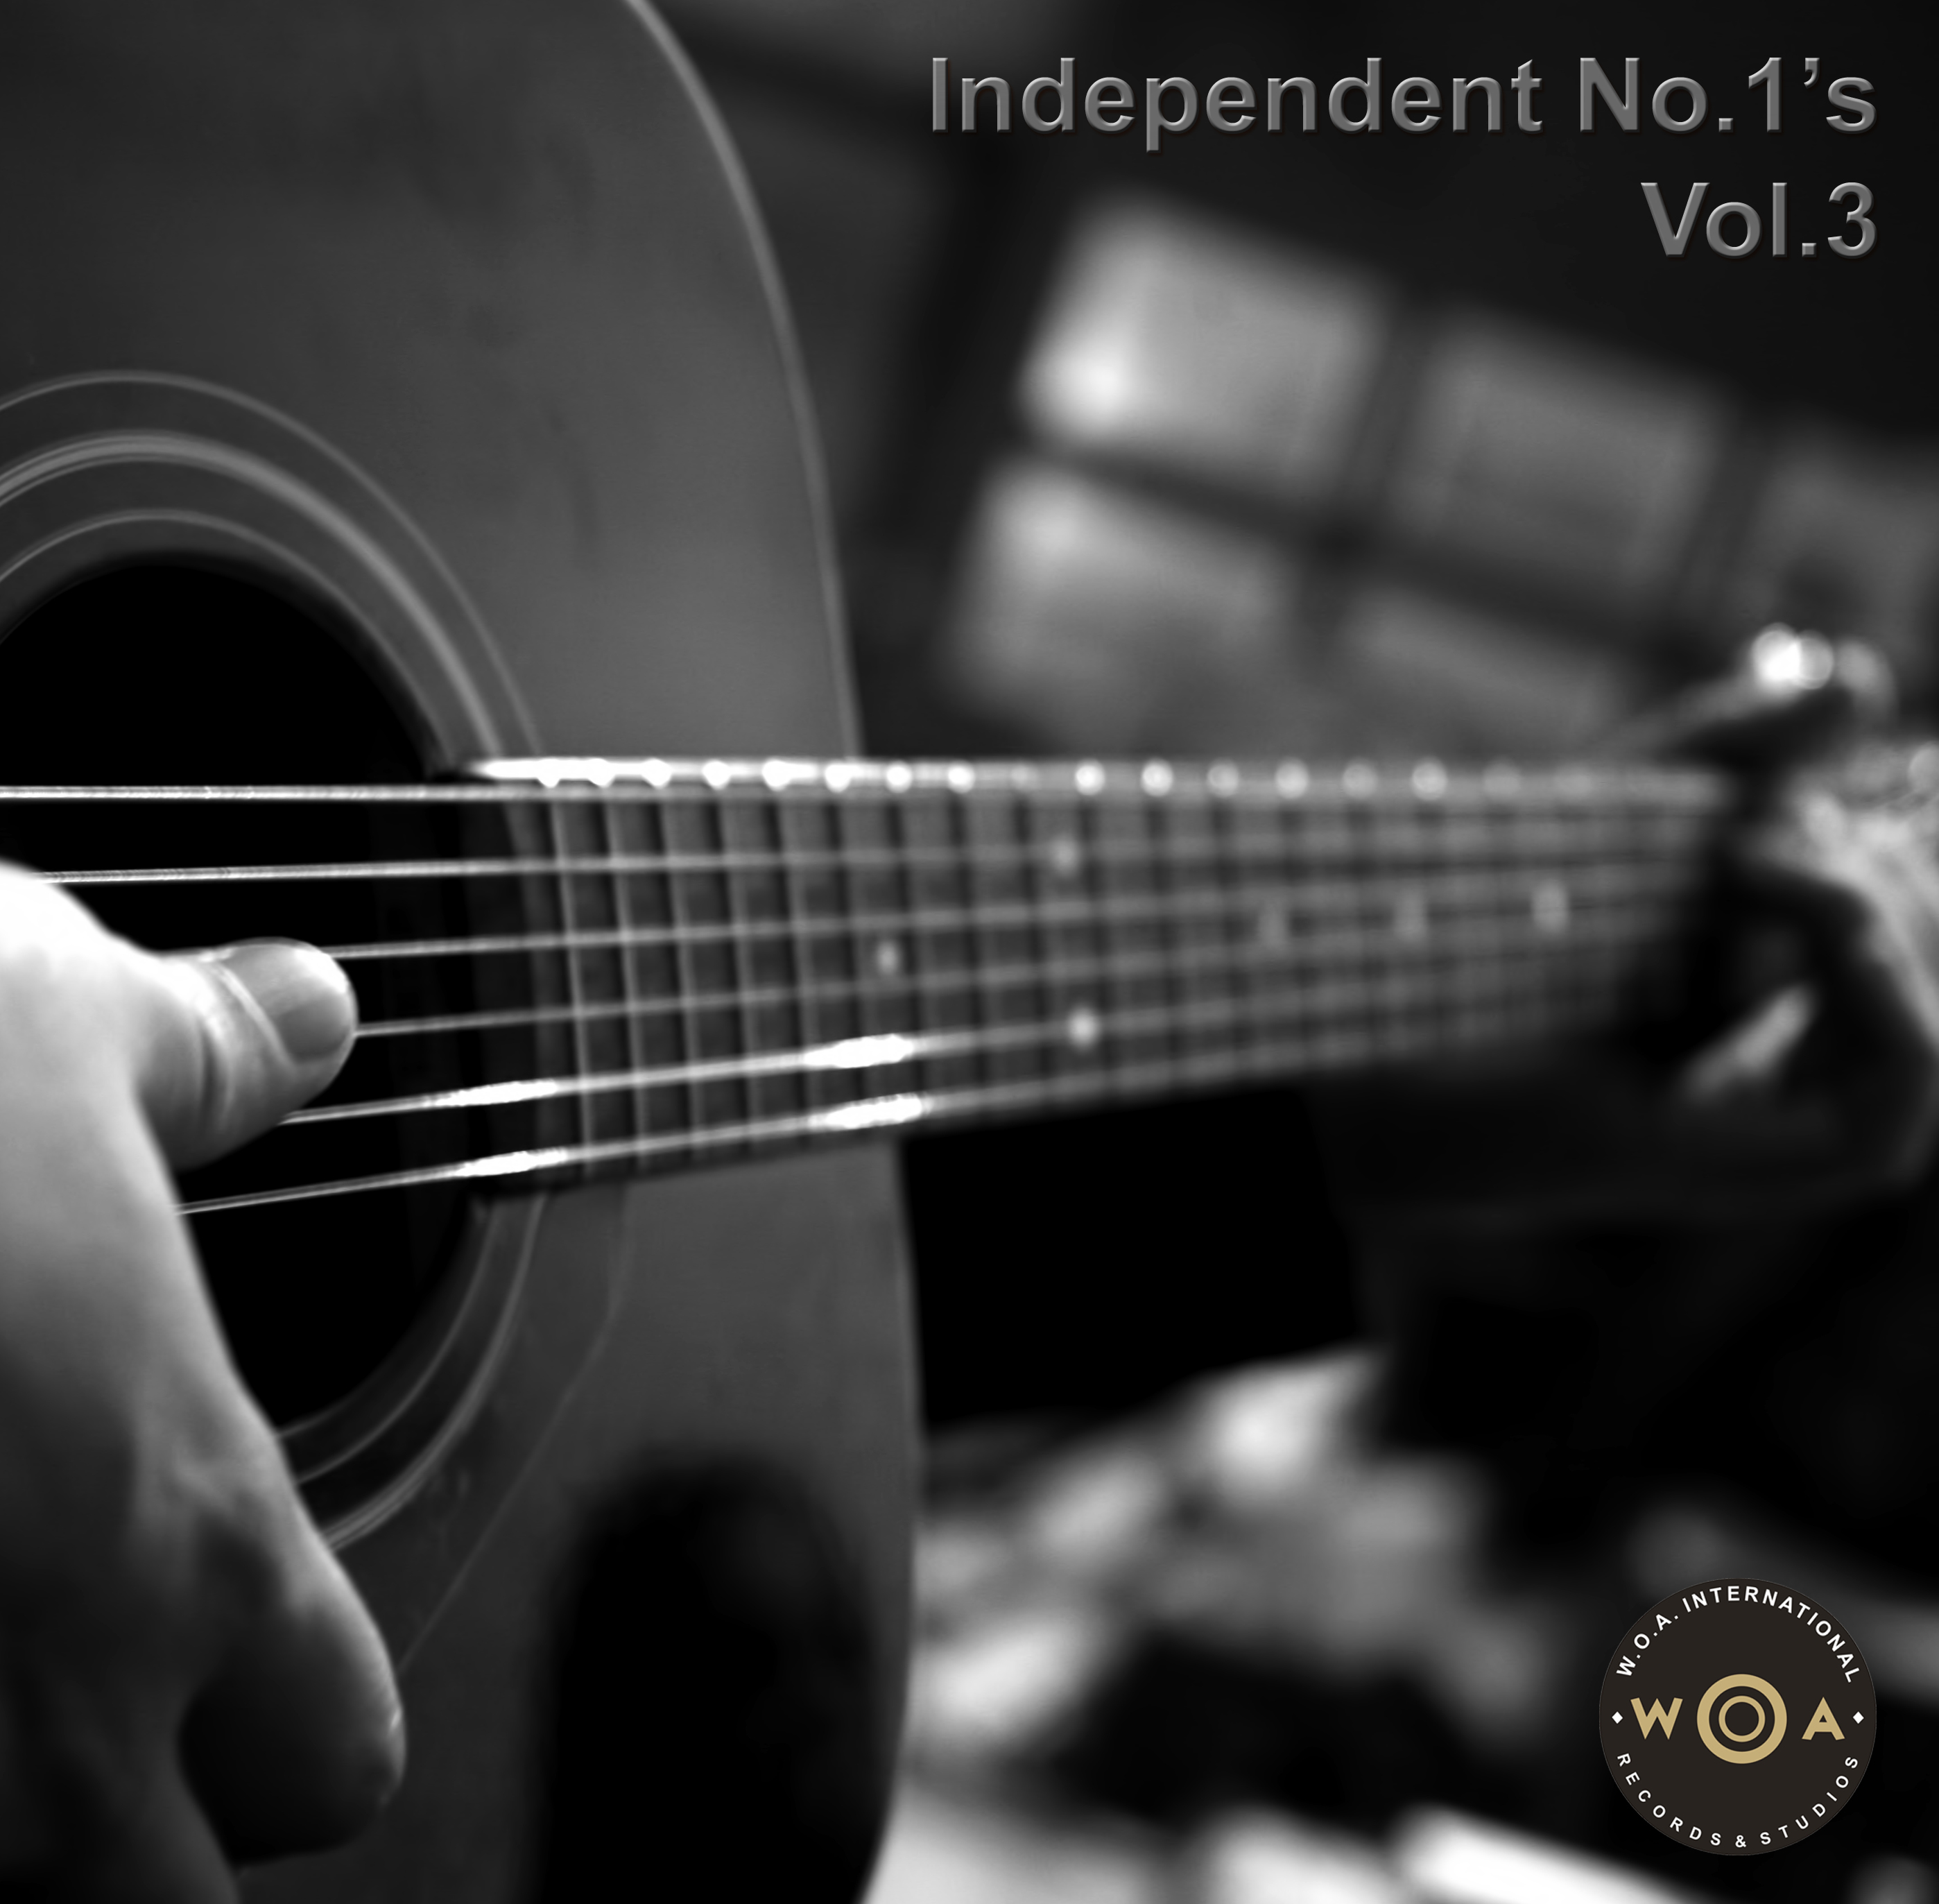 Independent No.1's Vol.3